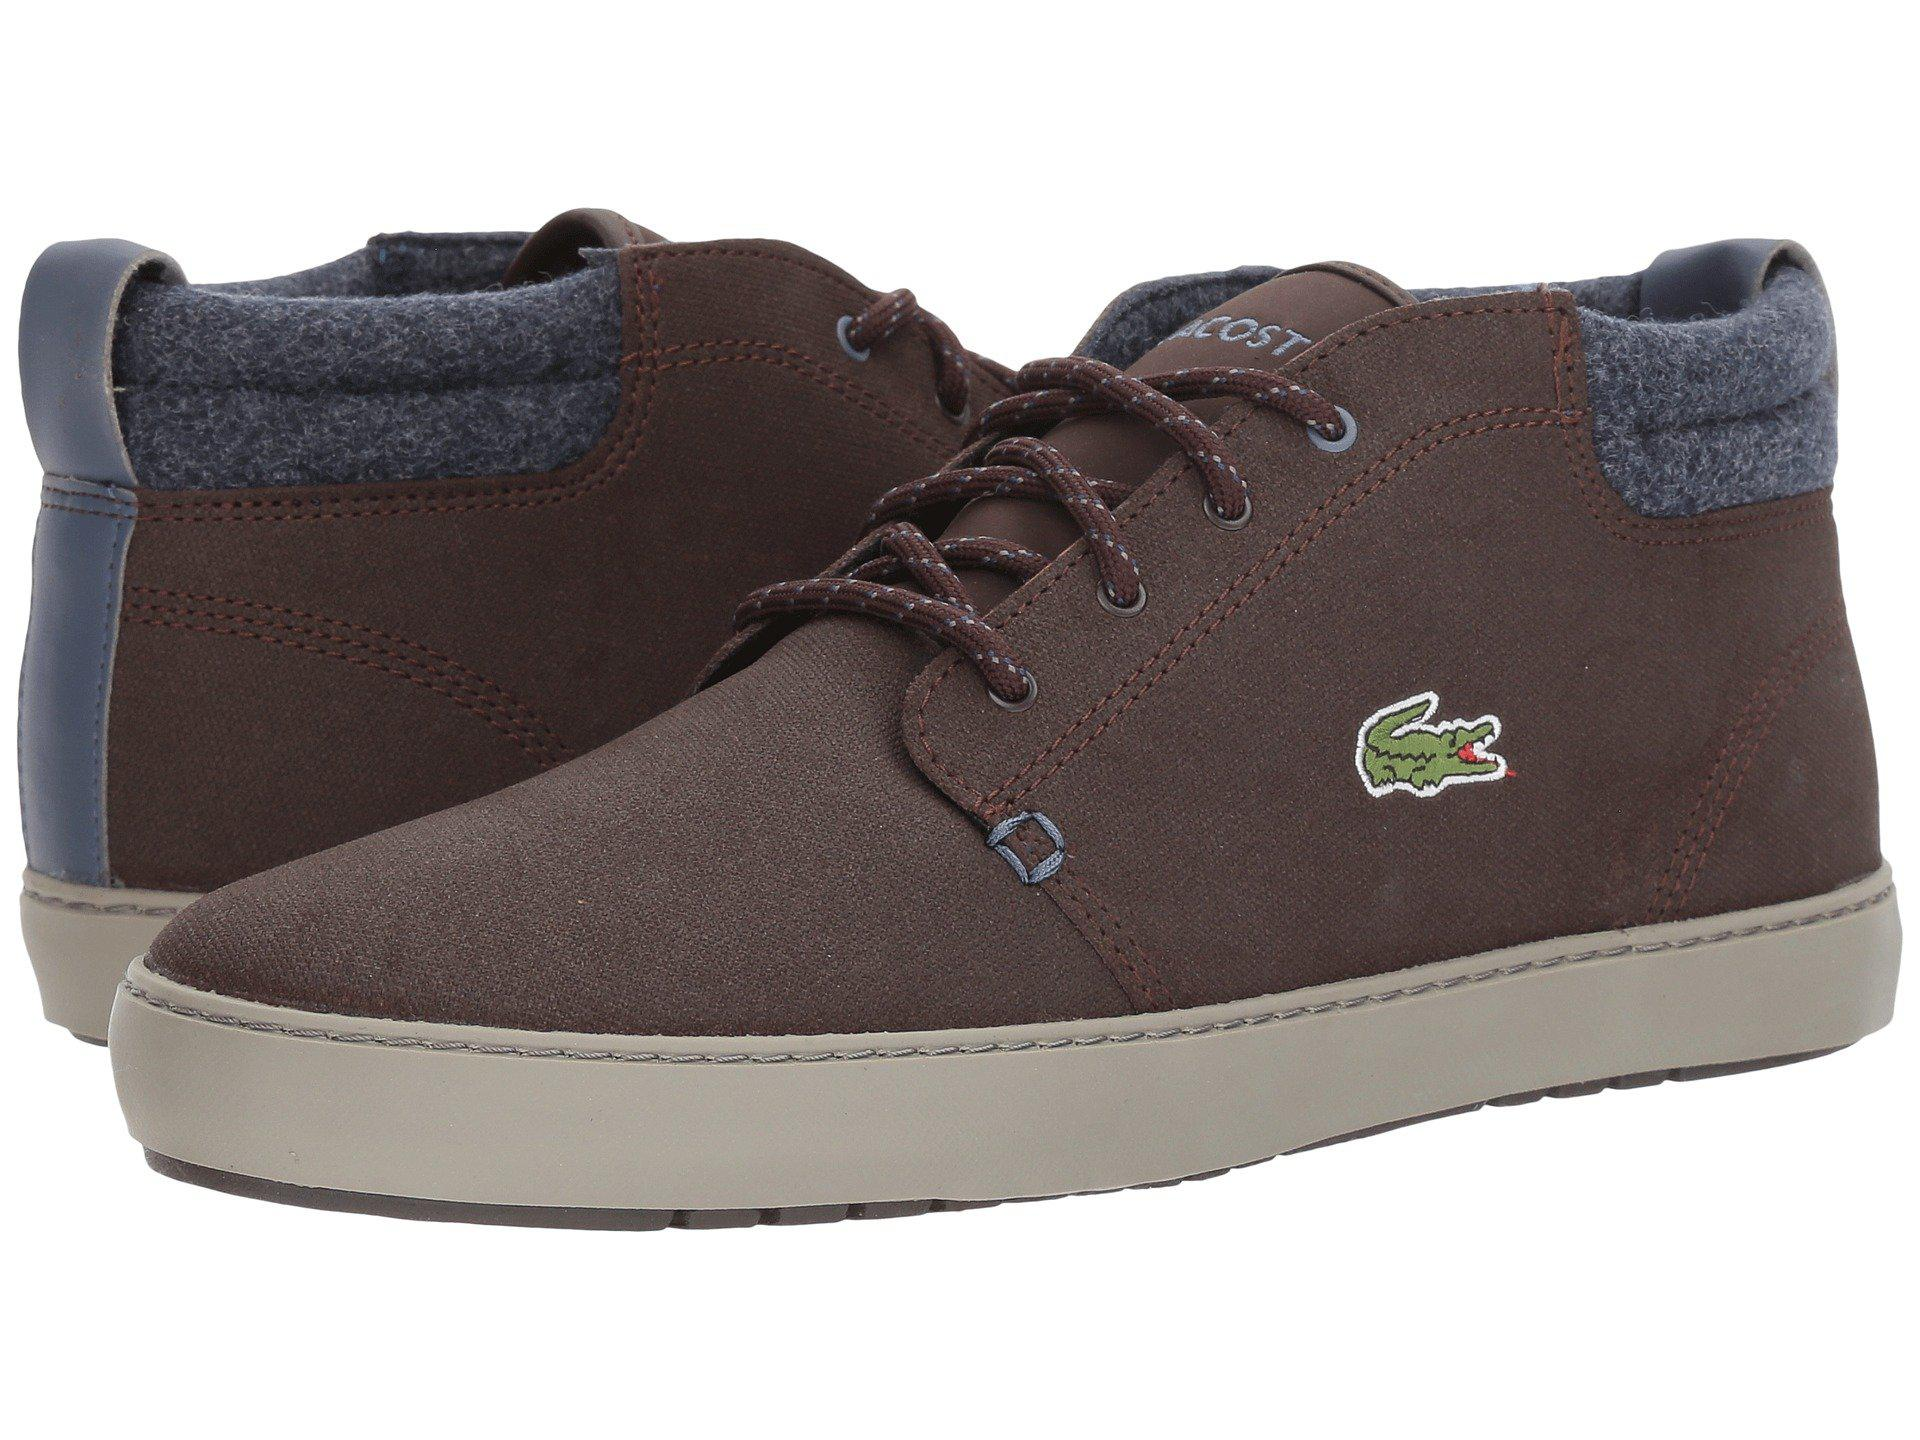 93309f9e1878 Lyst - Lacoste Ampthill Terra 417 1 Cam (dark Brown) Men s Shoes in ...